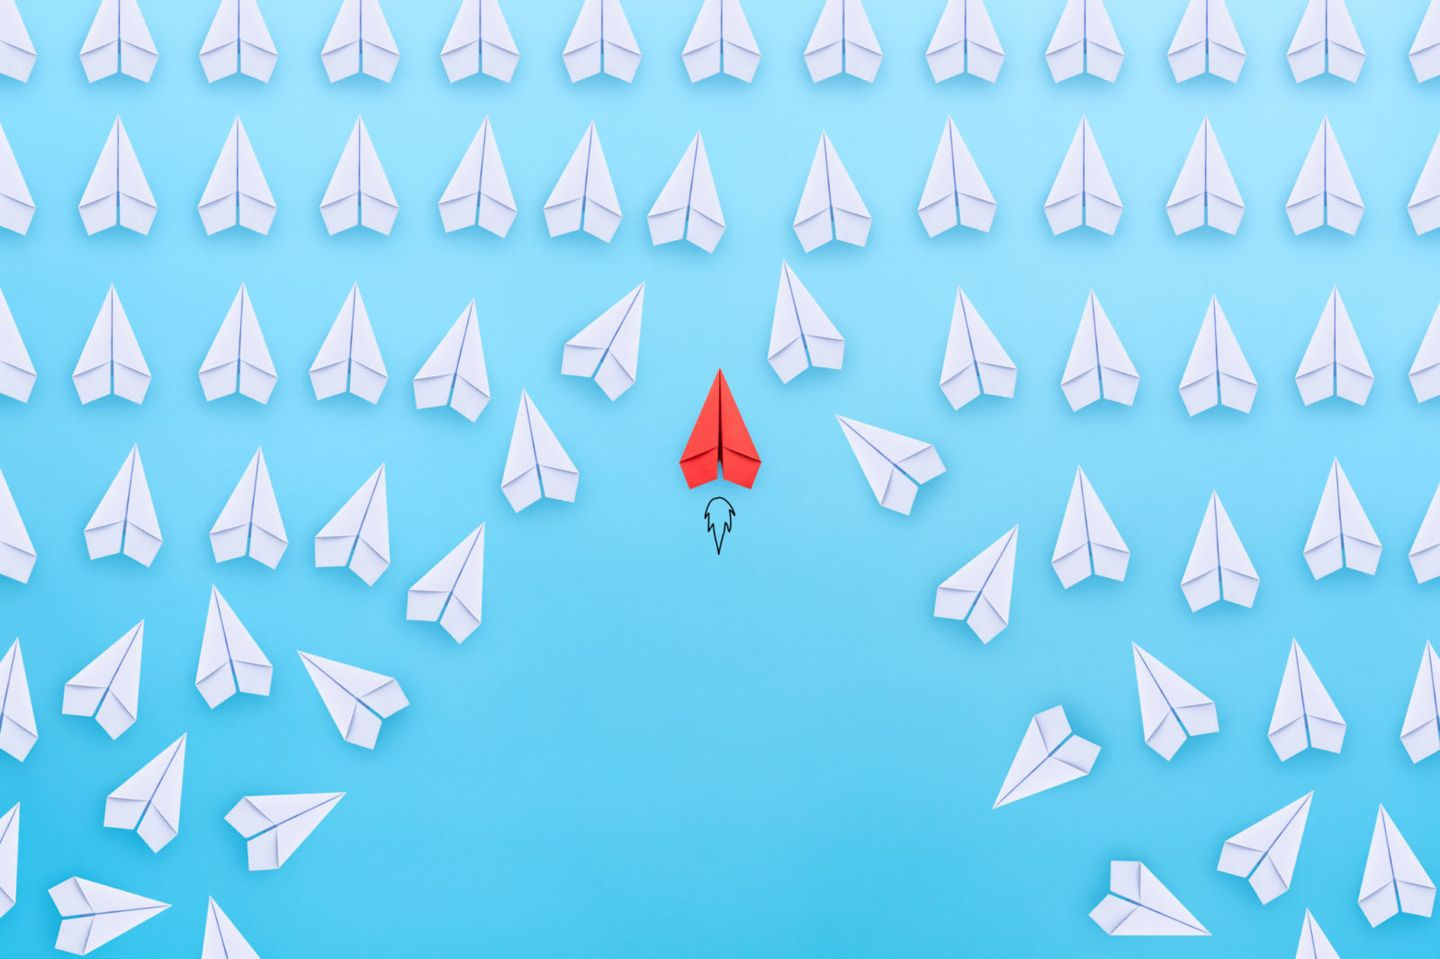 Business competition successful businessman concept with red paper plane flying overtake the other white paper planes on blue background